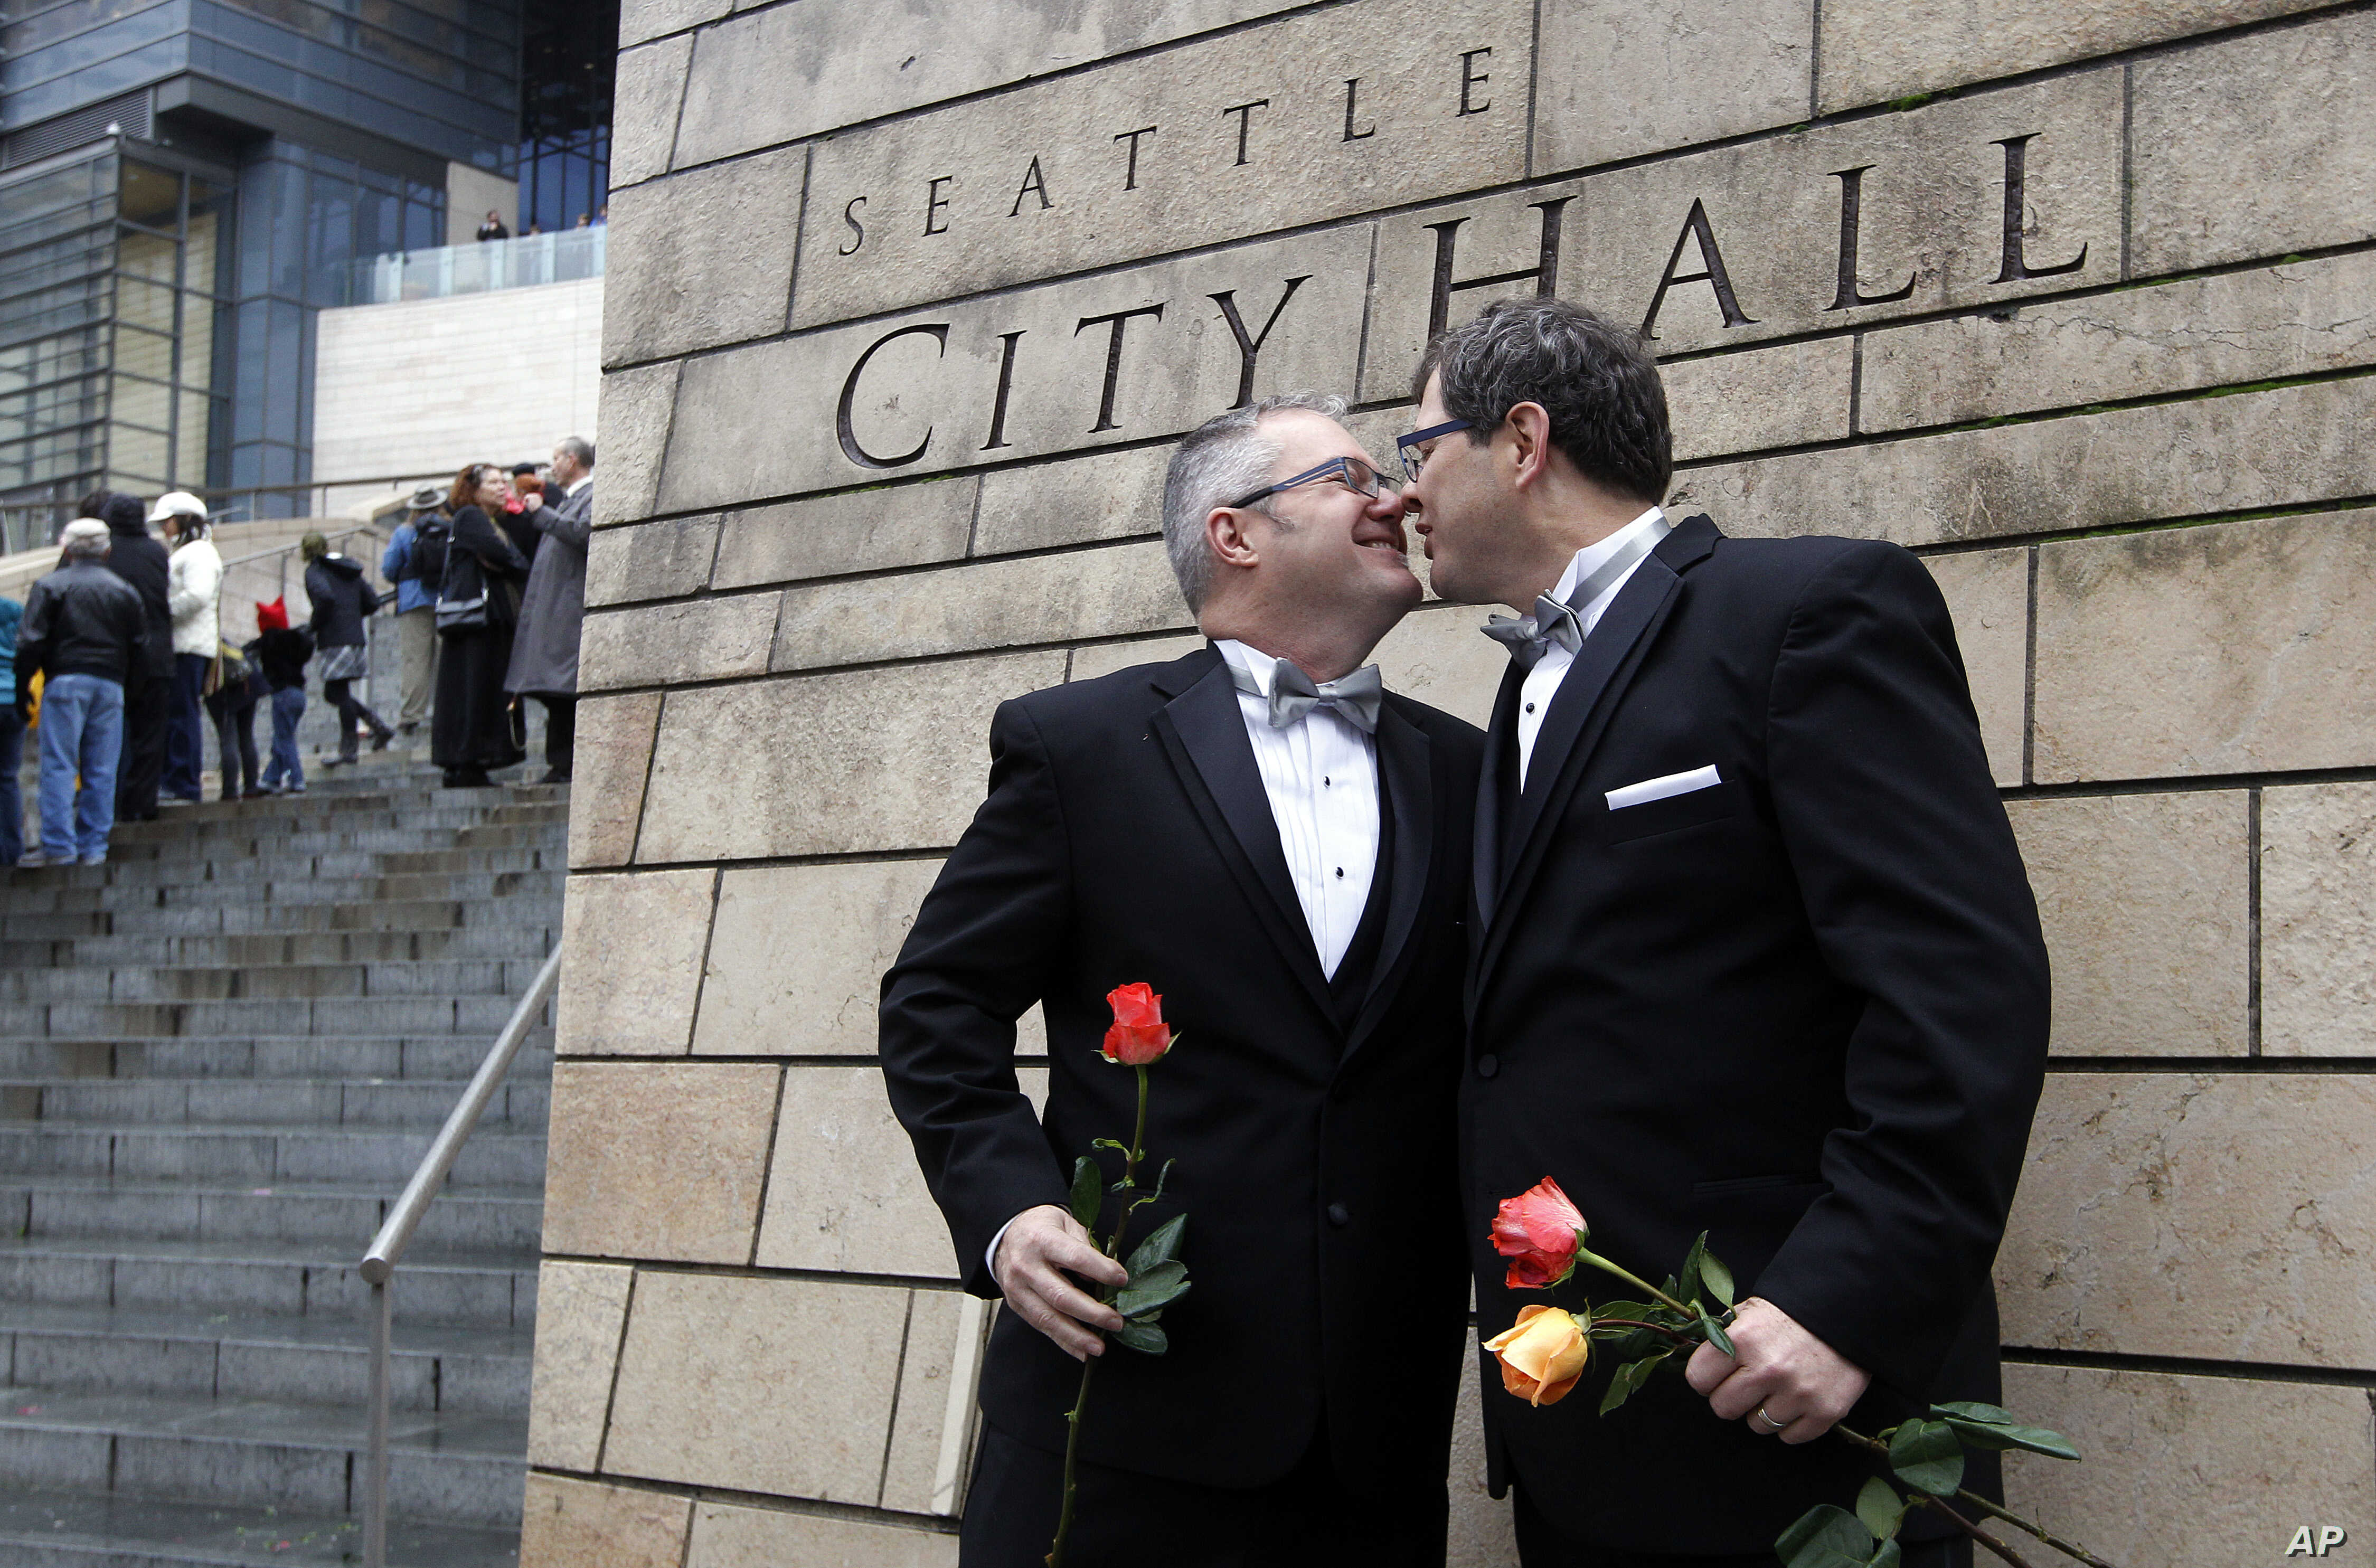 First gay marriage in dc